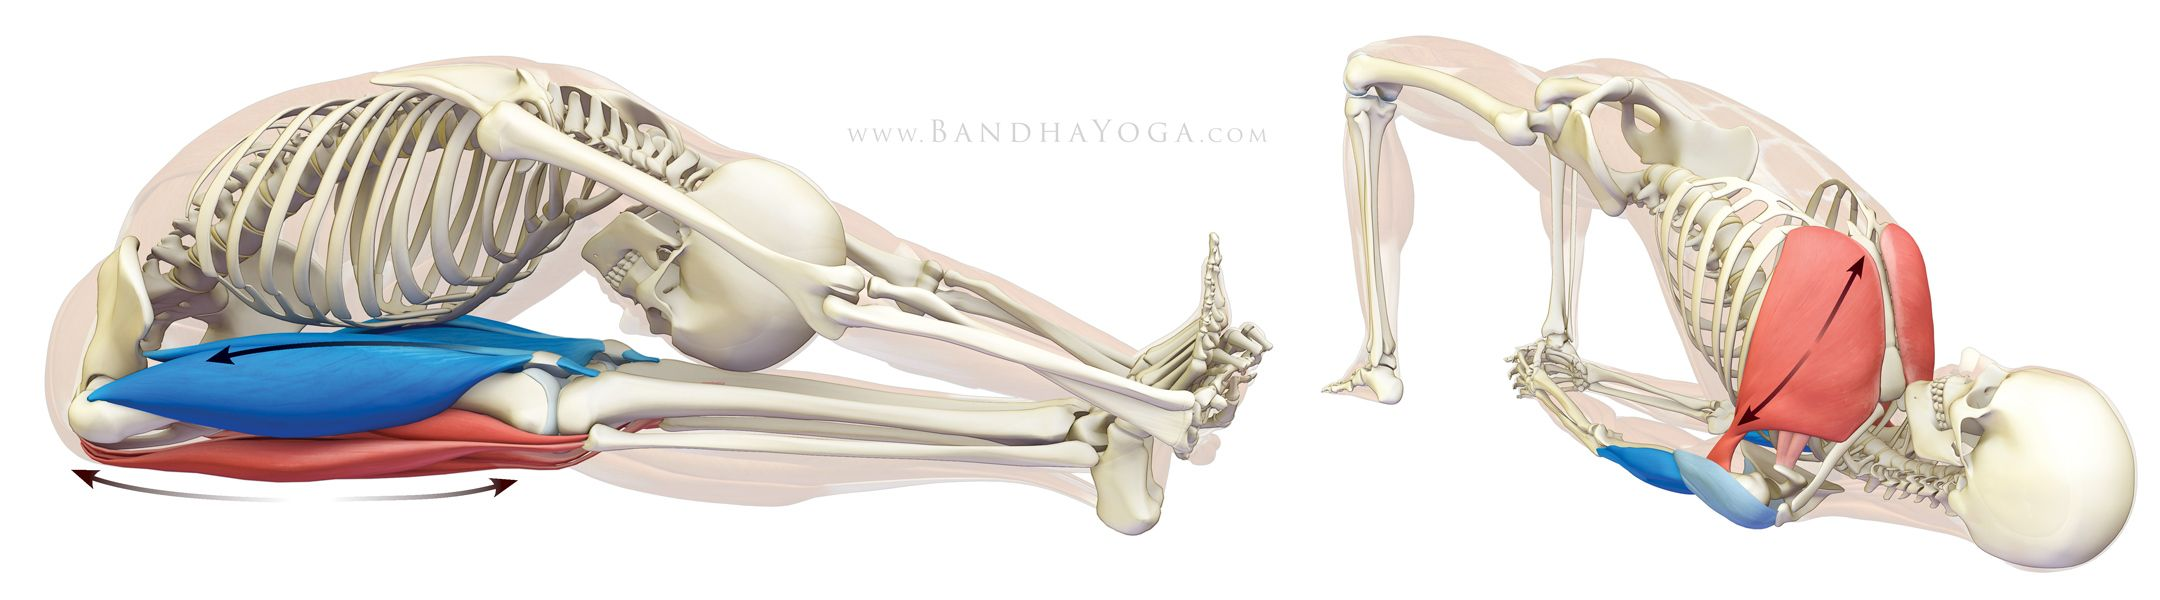 The Daily Bandha: Stretching, Age and Your Down Dog | a minha saúde ...